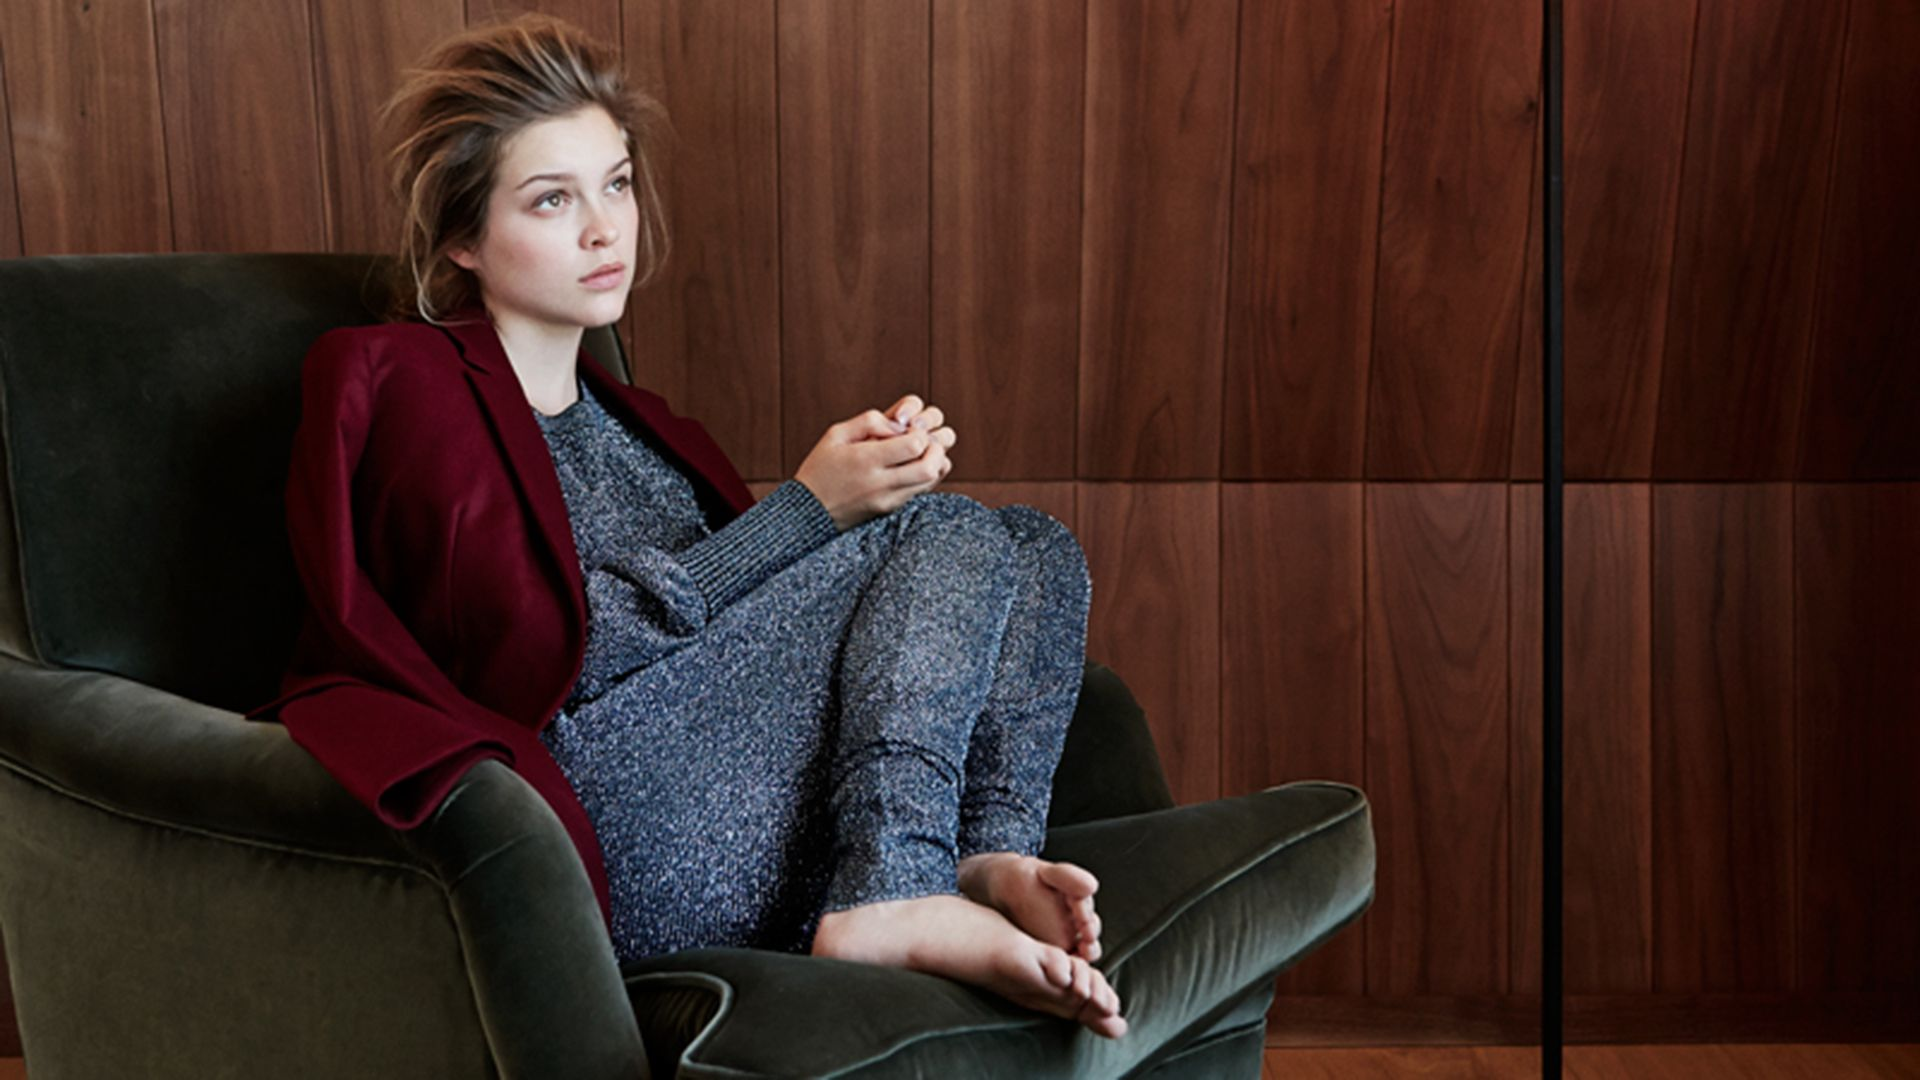 Lovely Sophie Cookson: Sophie Cookson, Oxford